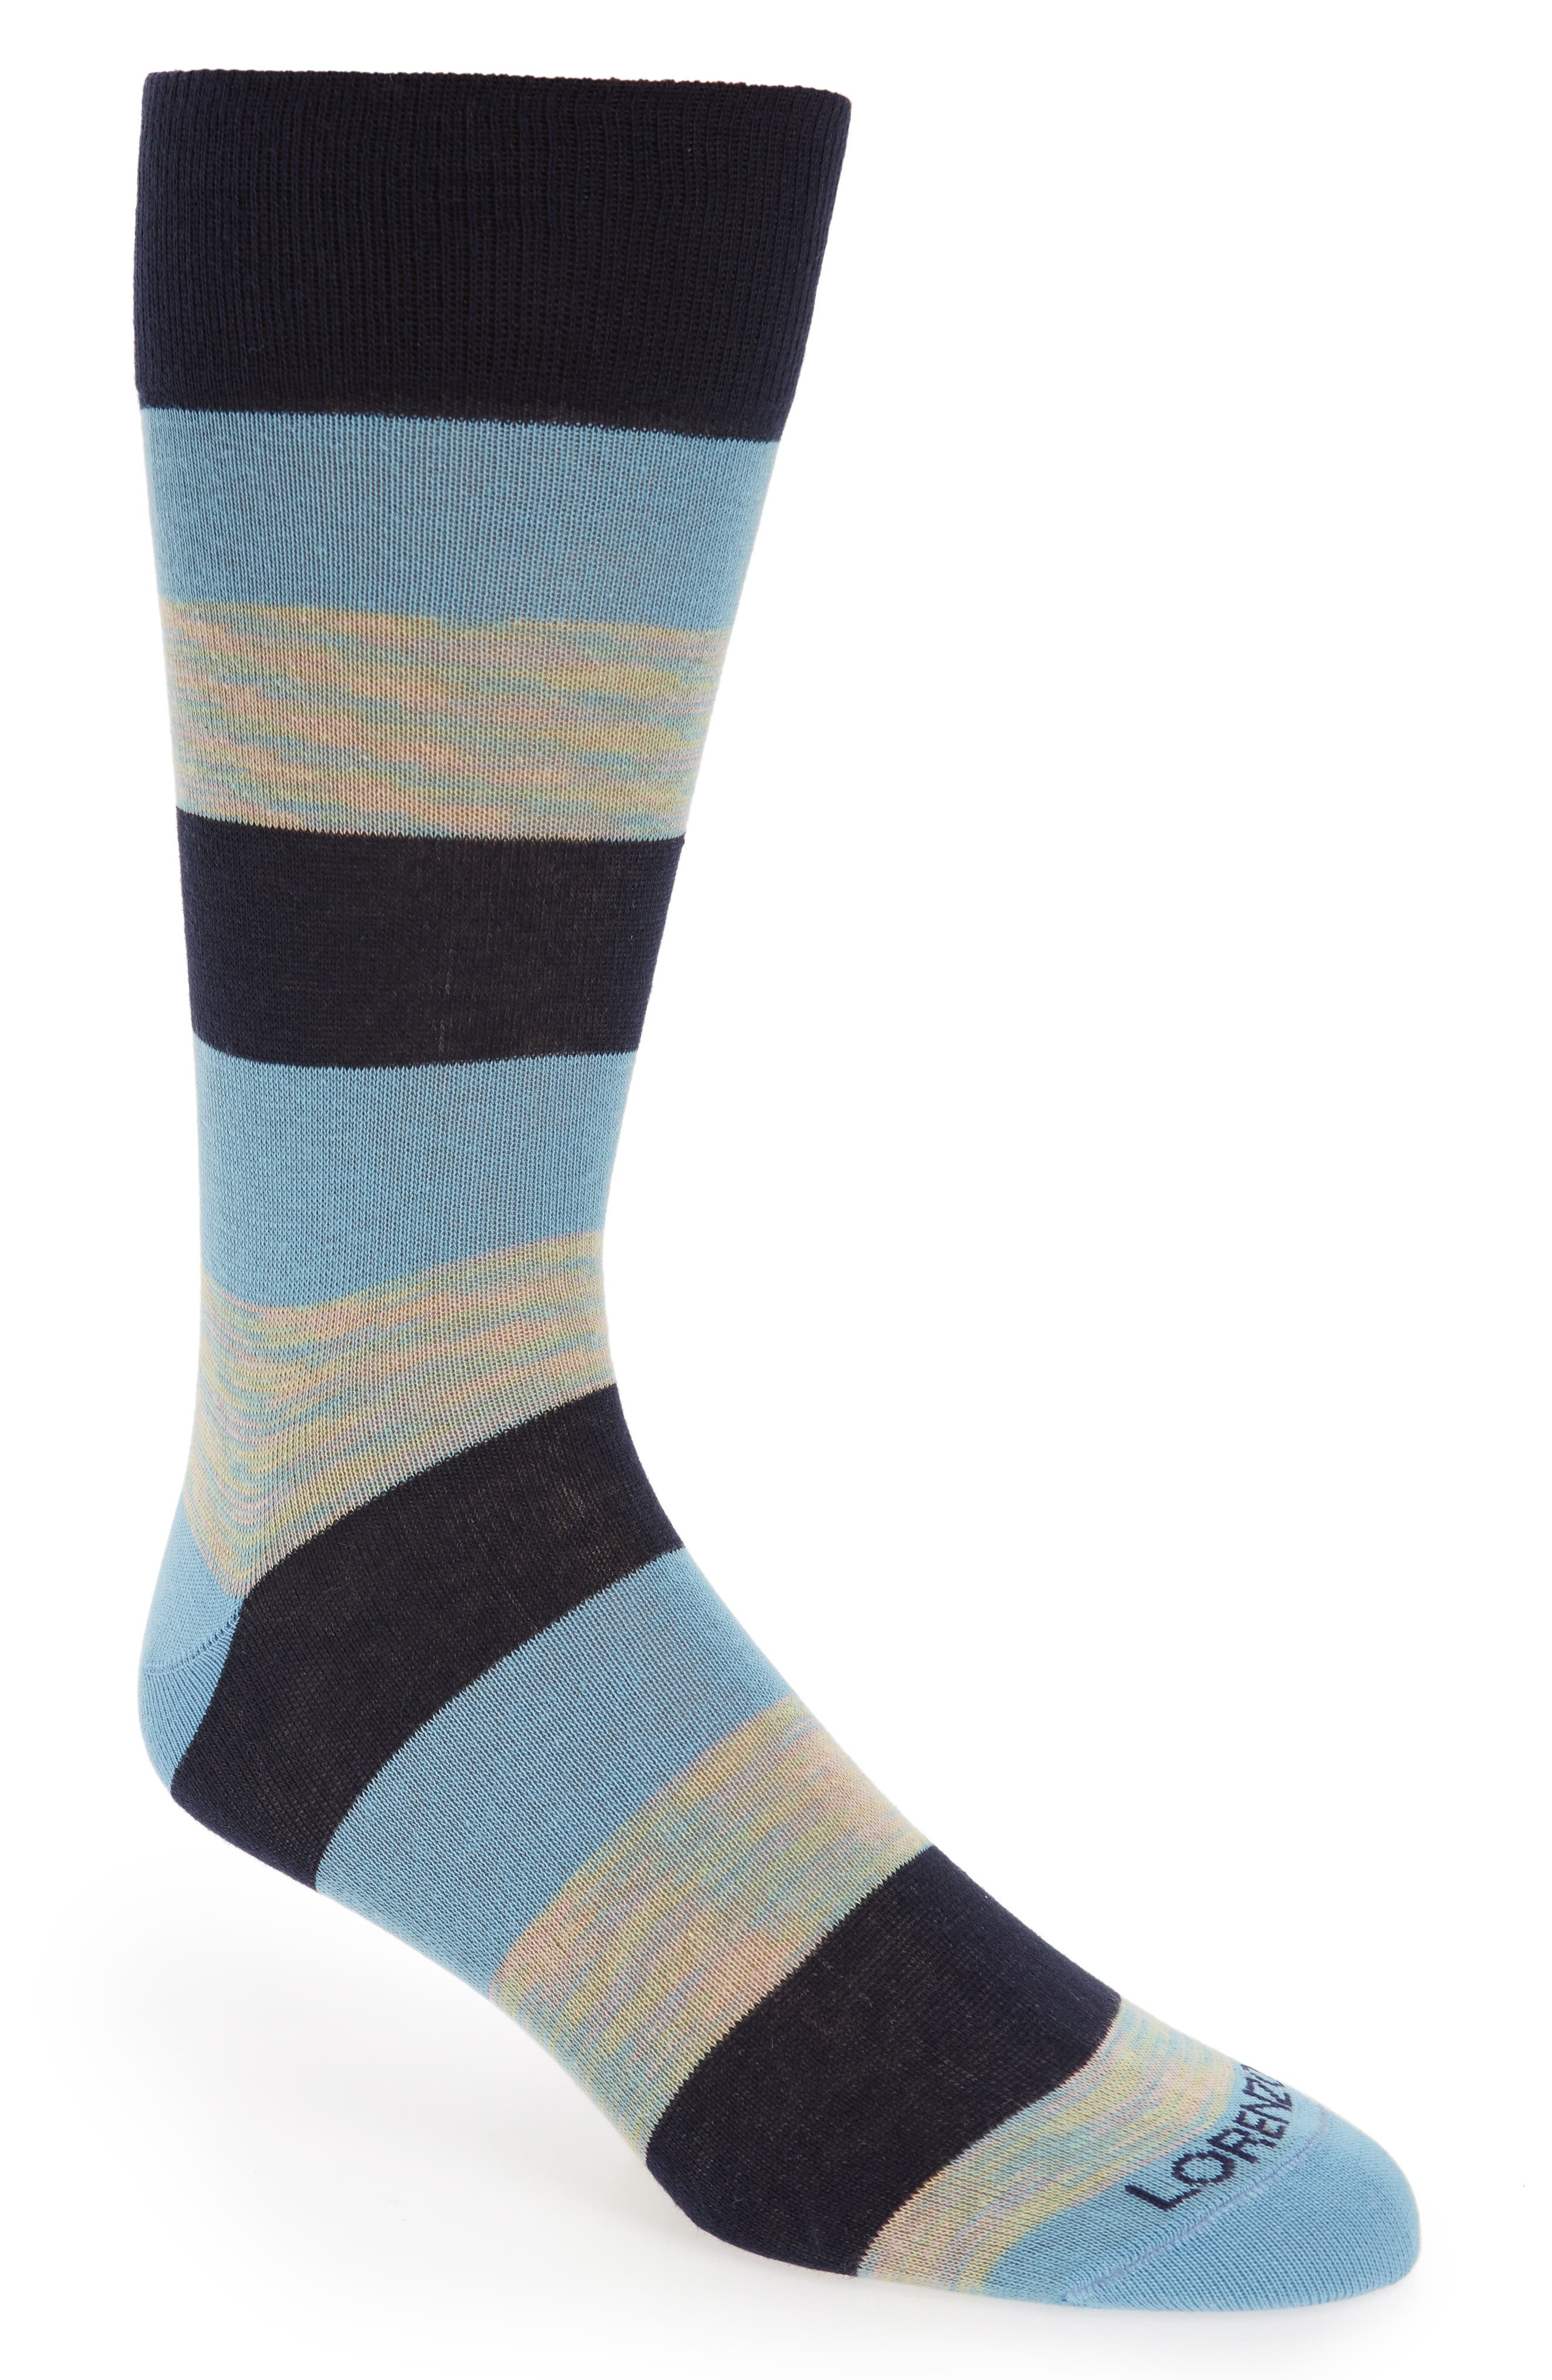 Rugby Stripe Socks,                             Main thumbnail 1, color,                             450